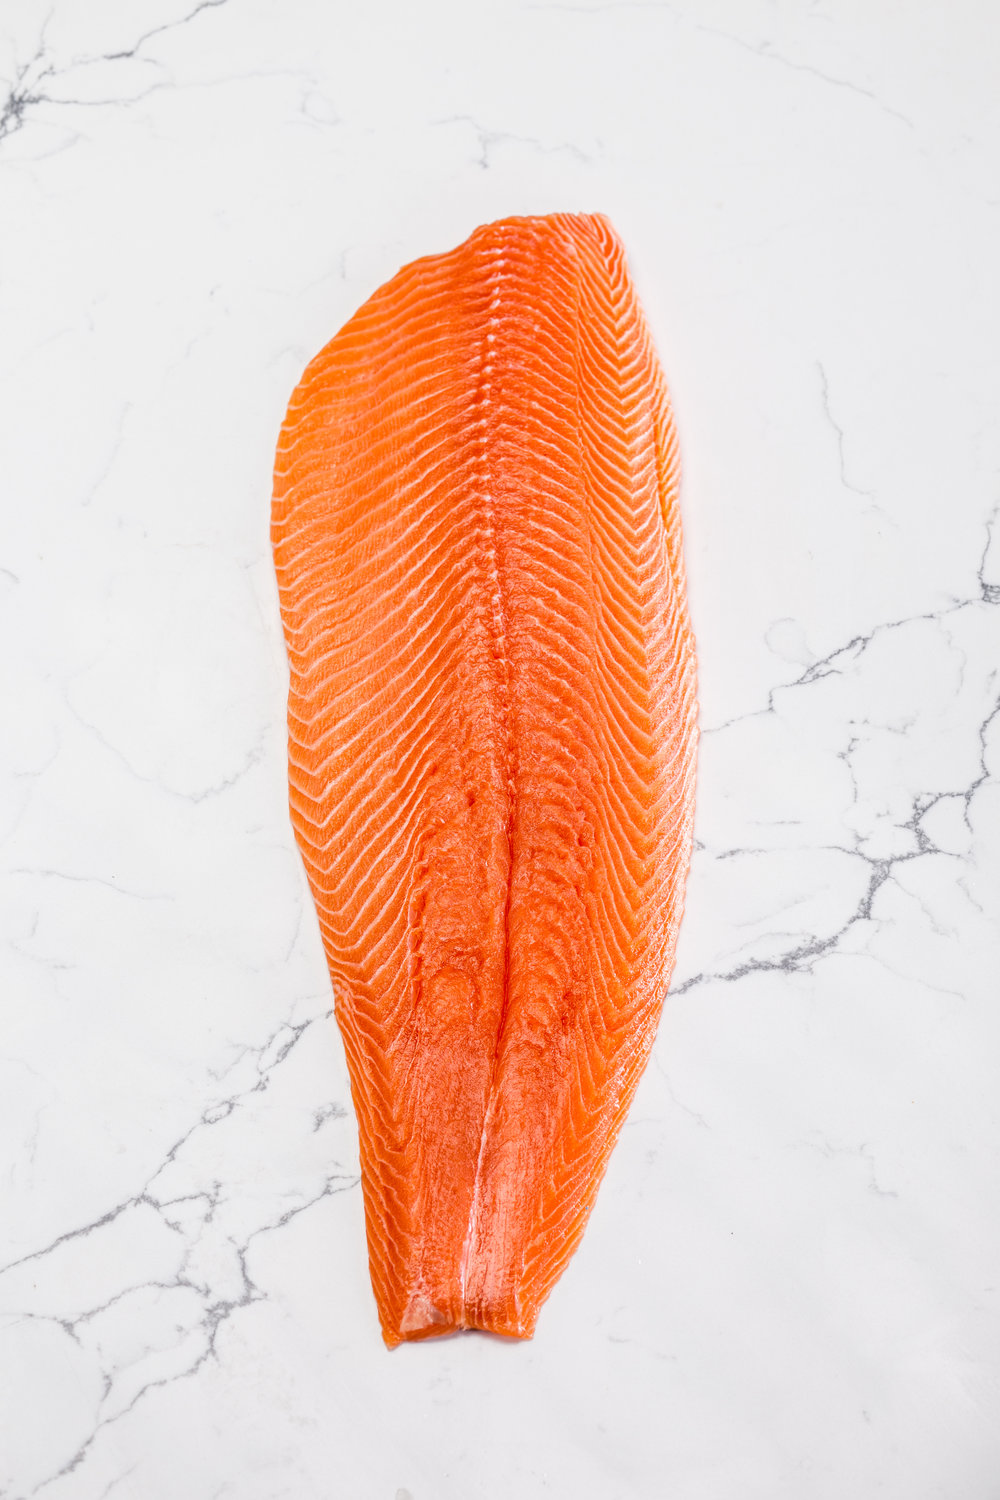 Hofseth Salmon filet-1-2.jpg